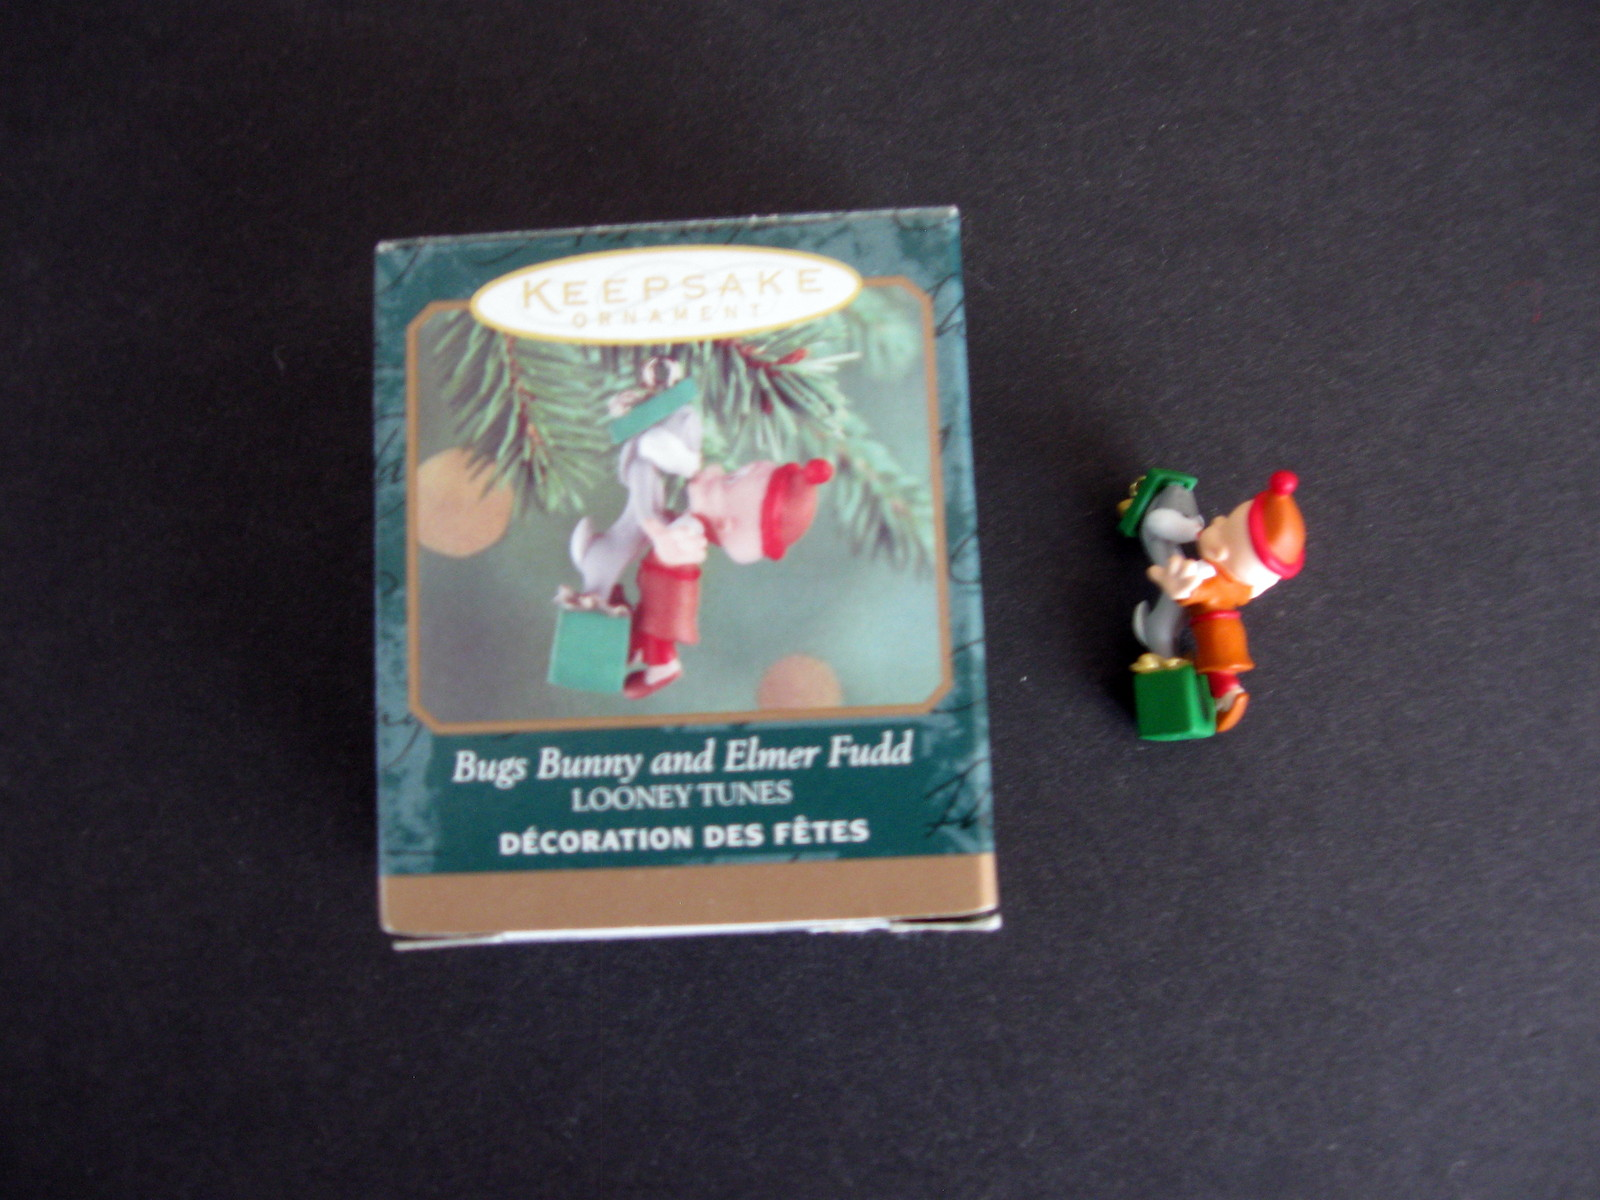 1999 Miniature Hallmark Keepsake Bugs Bunny and Elmer Fudd Ornament with Box